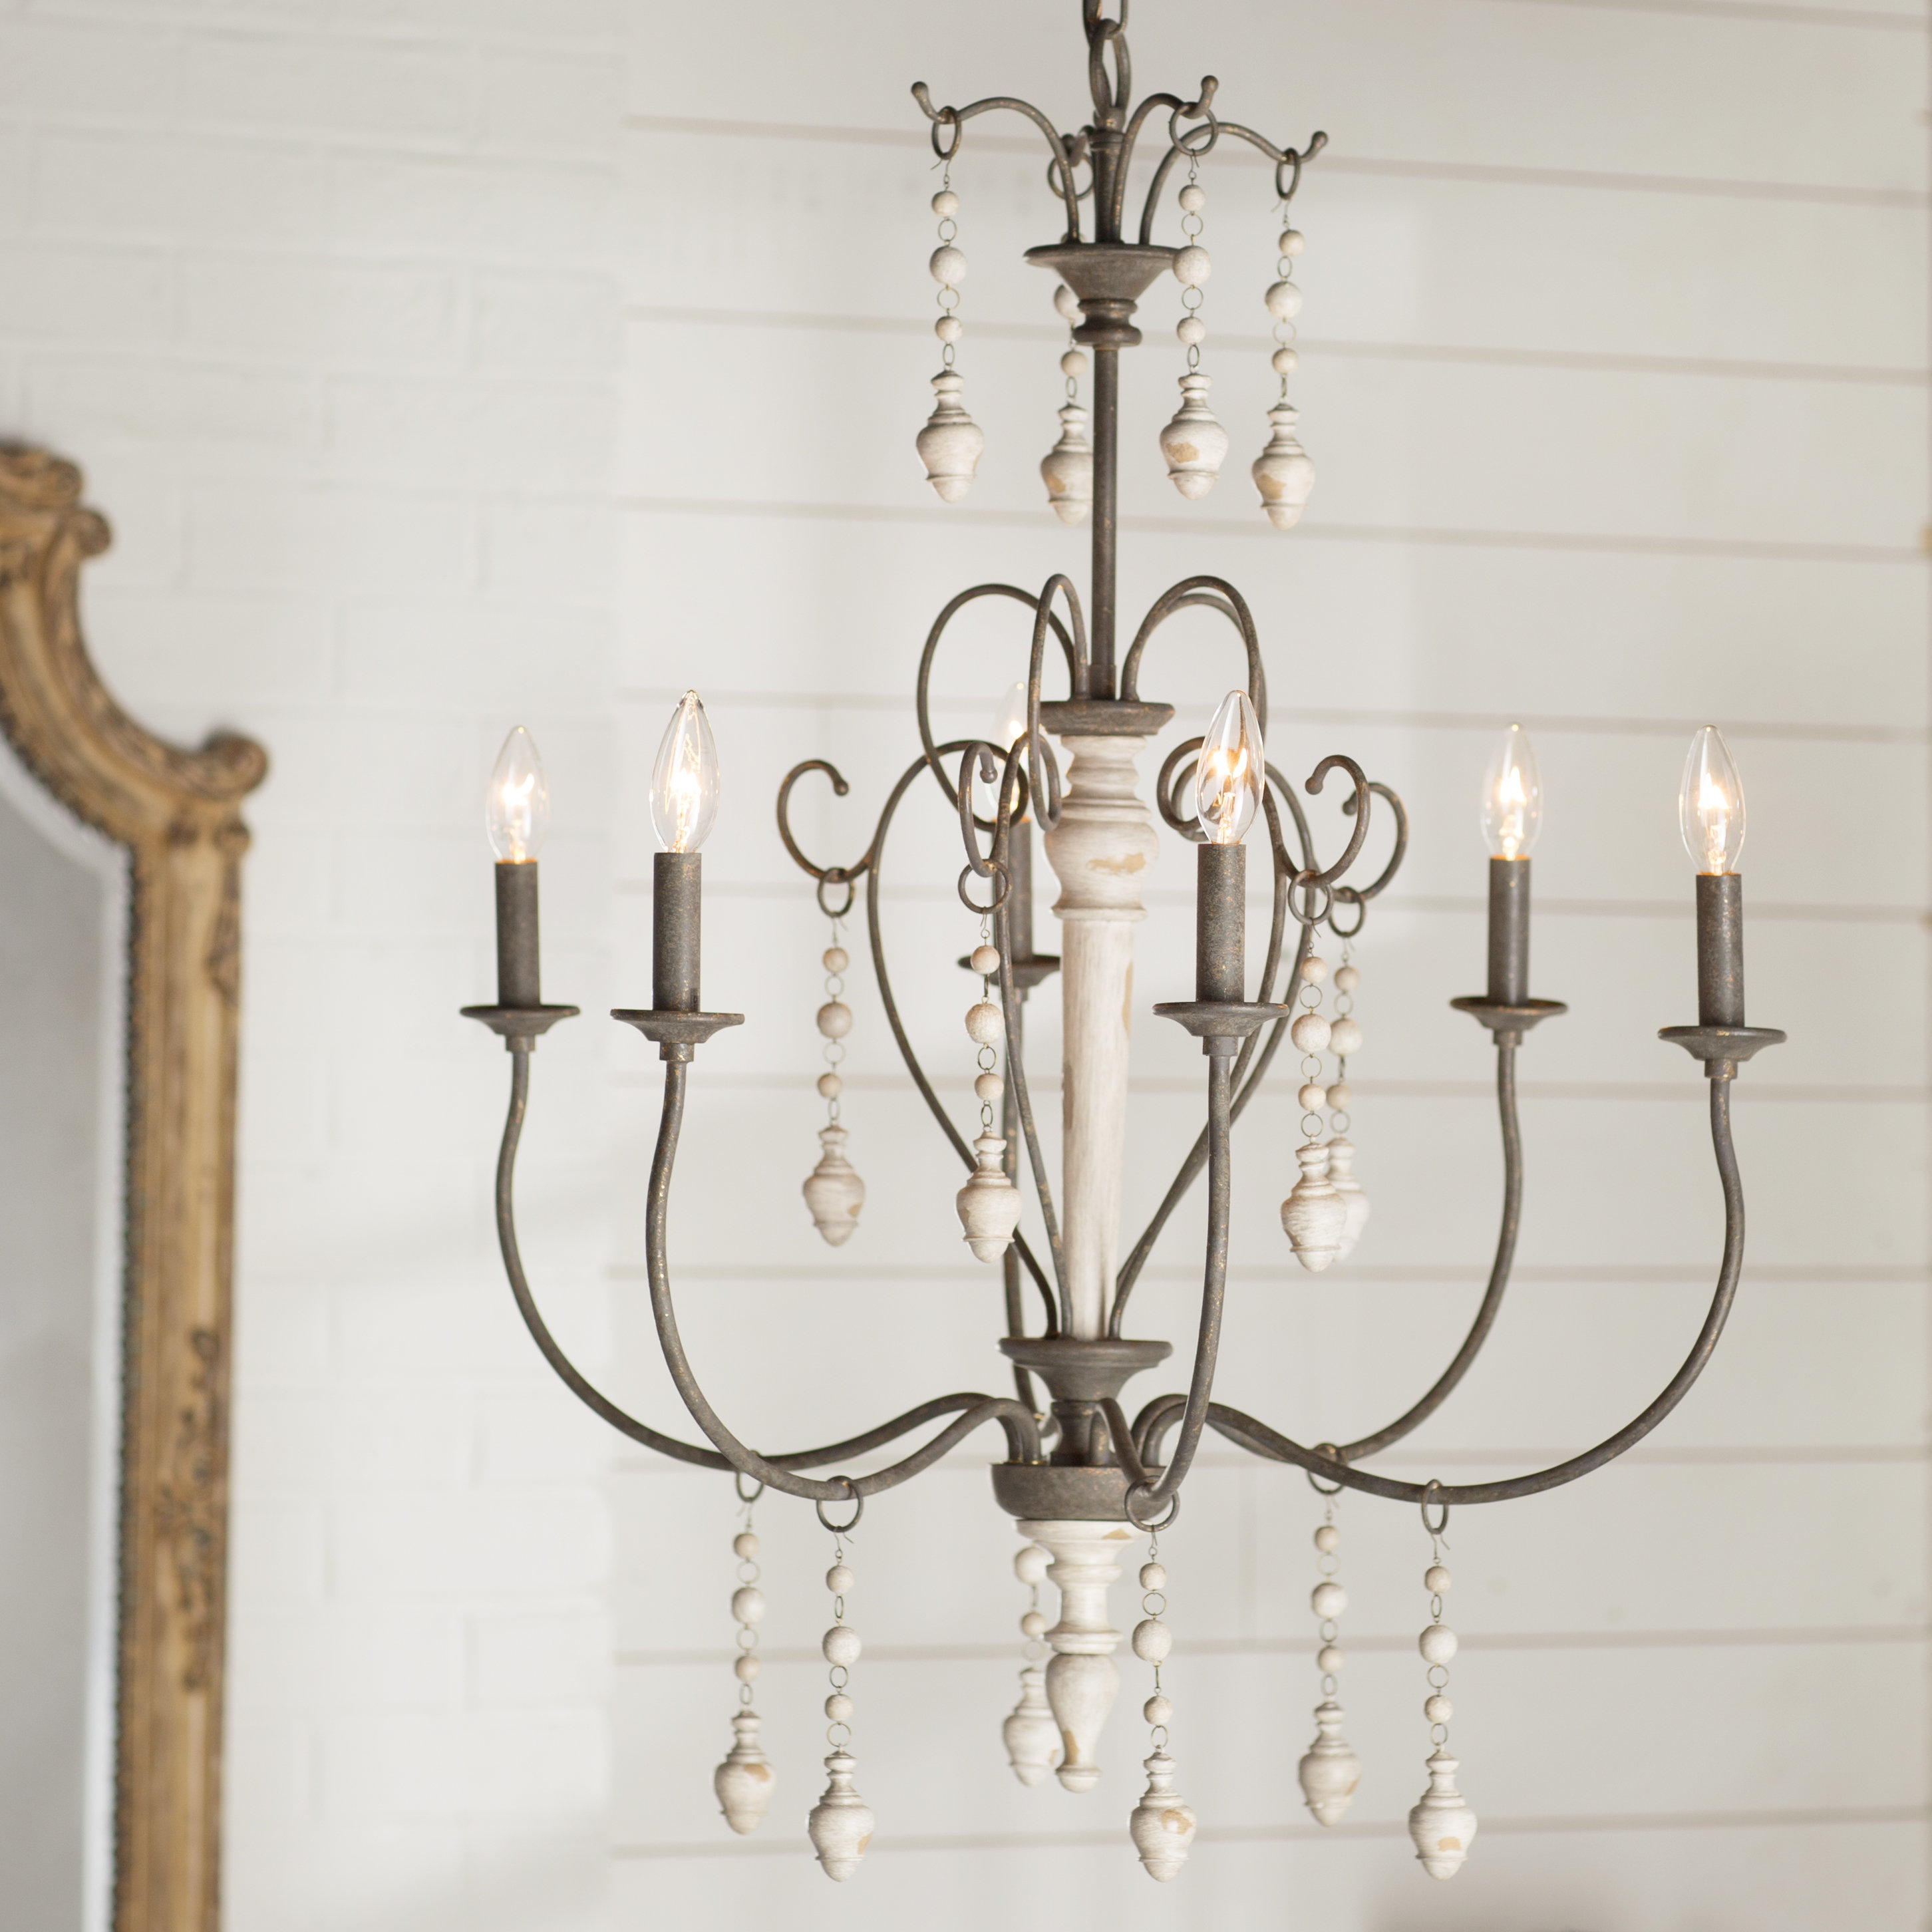 Bouchette Traditional 6 Light Candle Style Chandelier Throughout Paladino 6 Light Chandeliers (View 24 of 30)